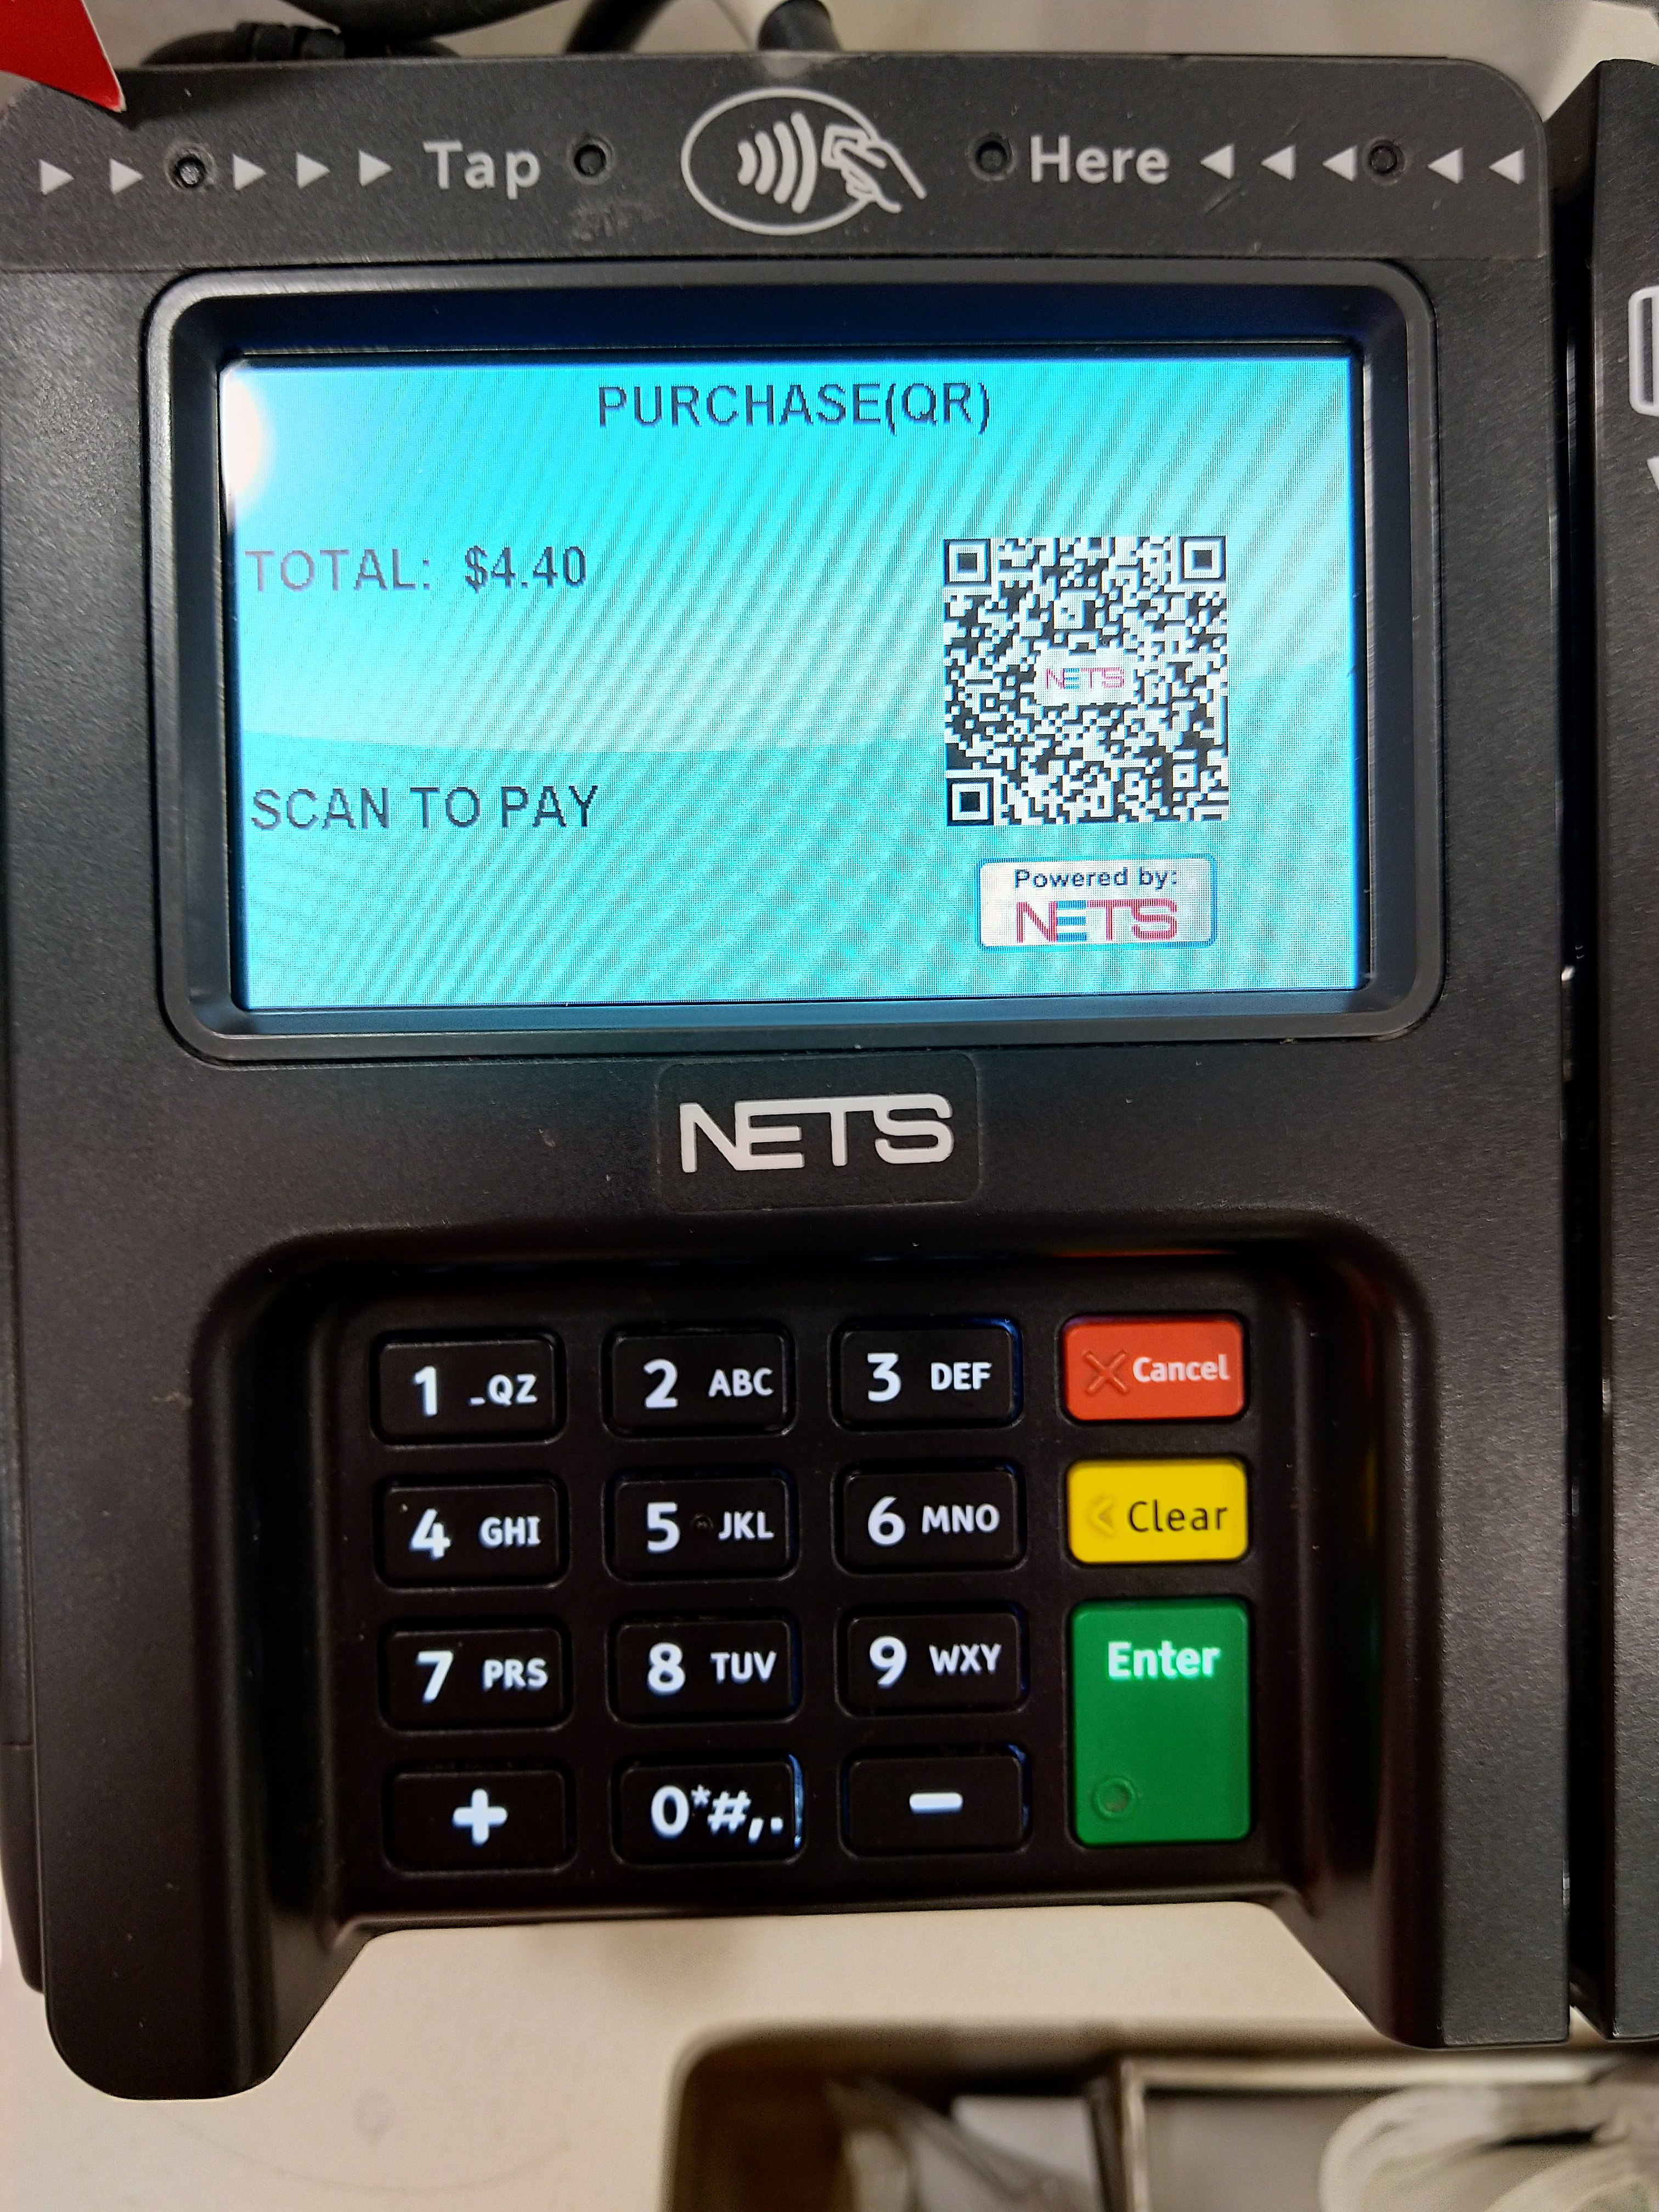 File:Ingenico ISC250 Payment NETS QR jpg - Wikimedia Commons